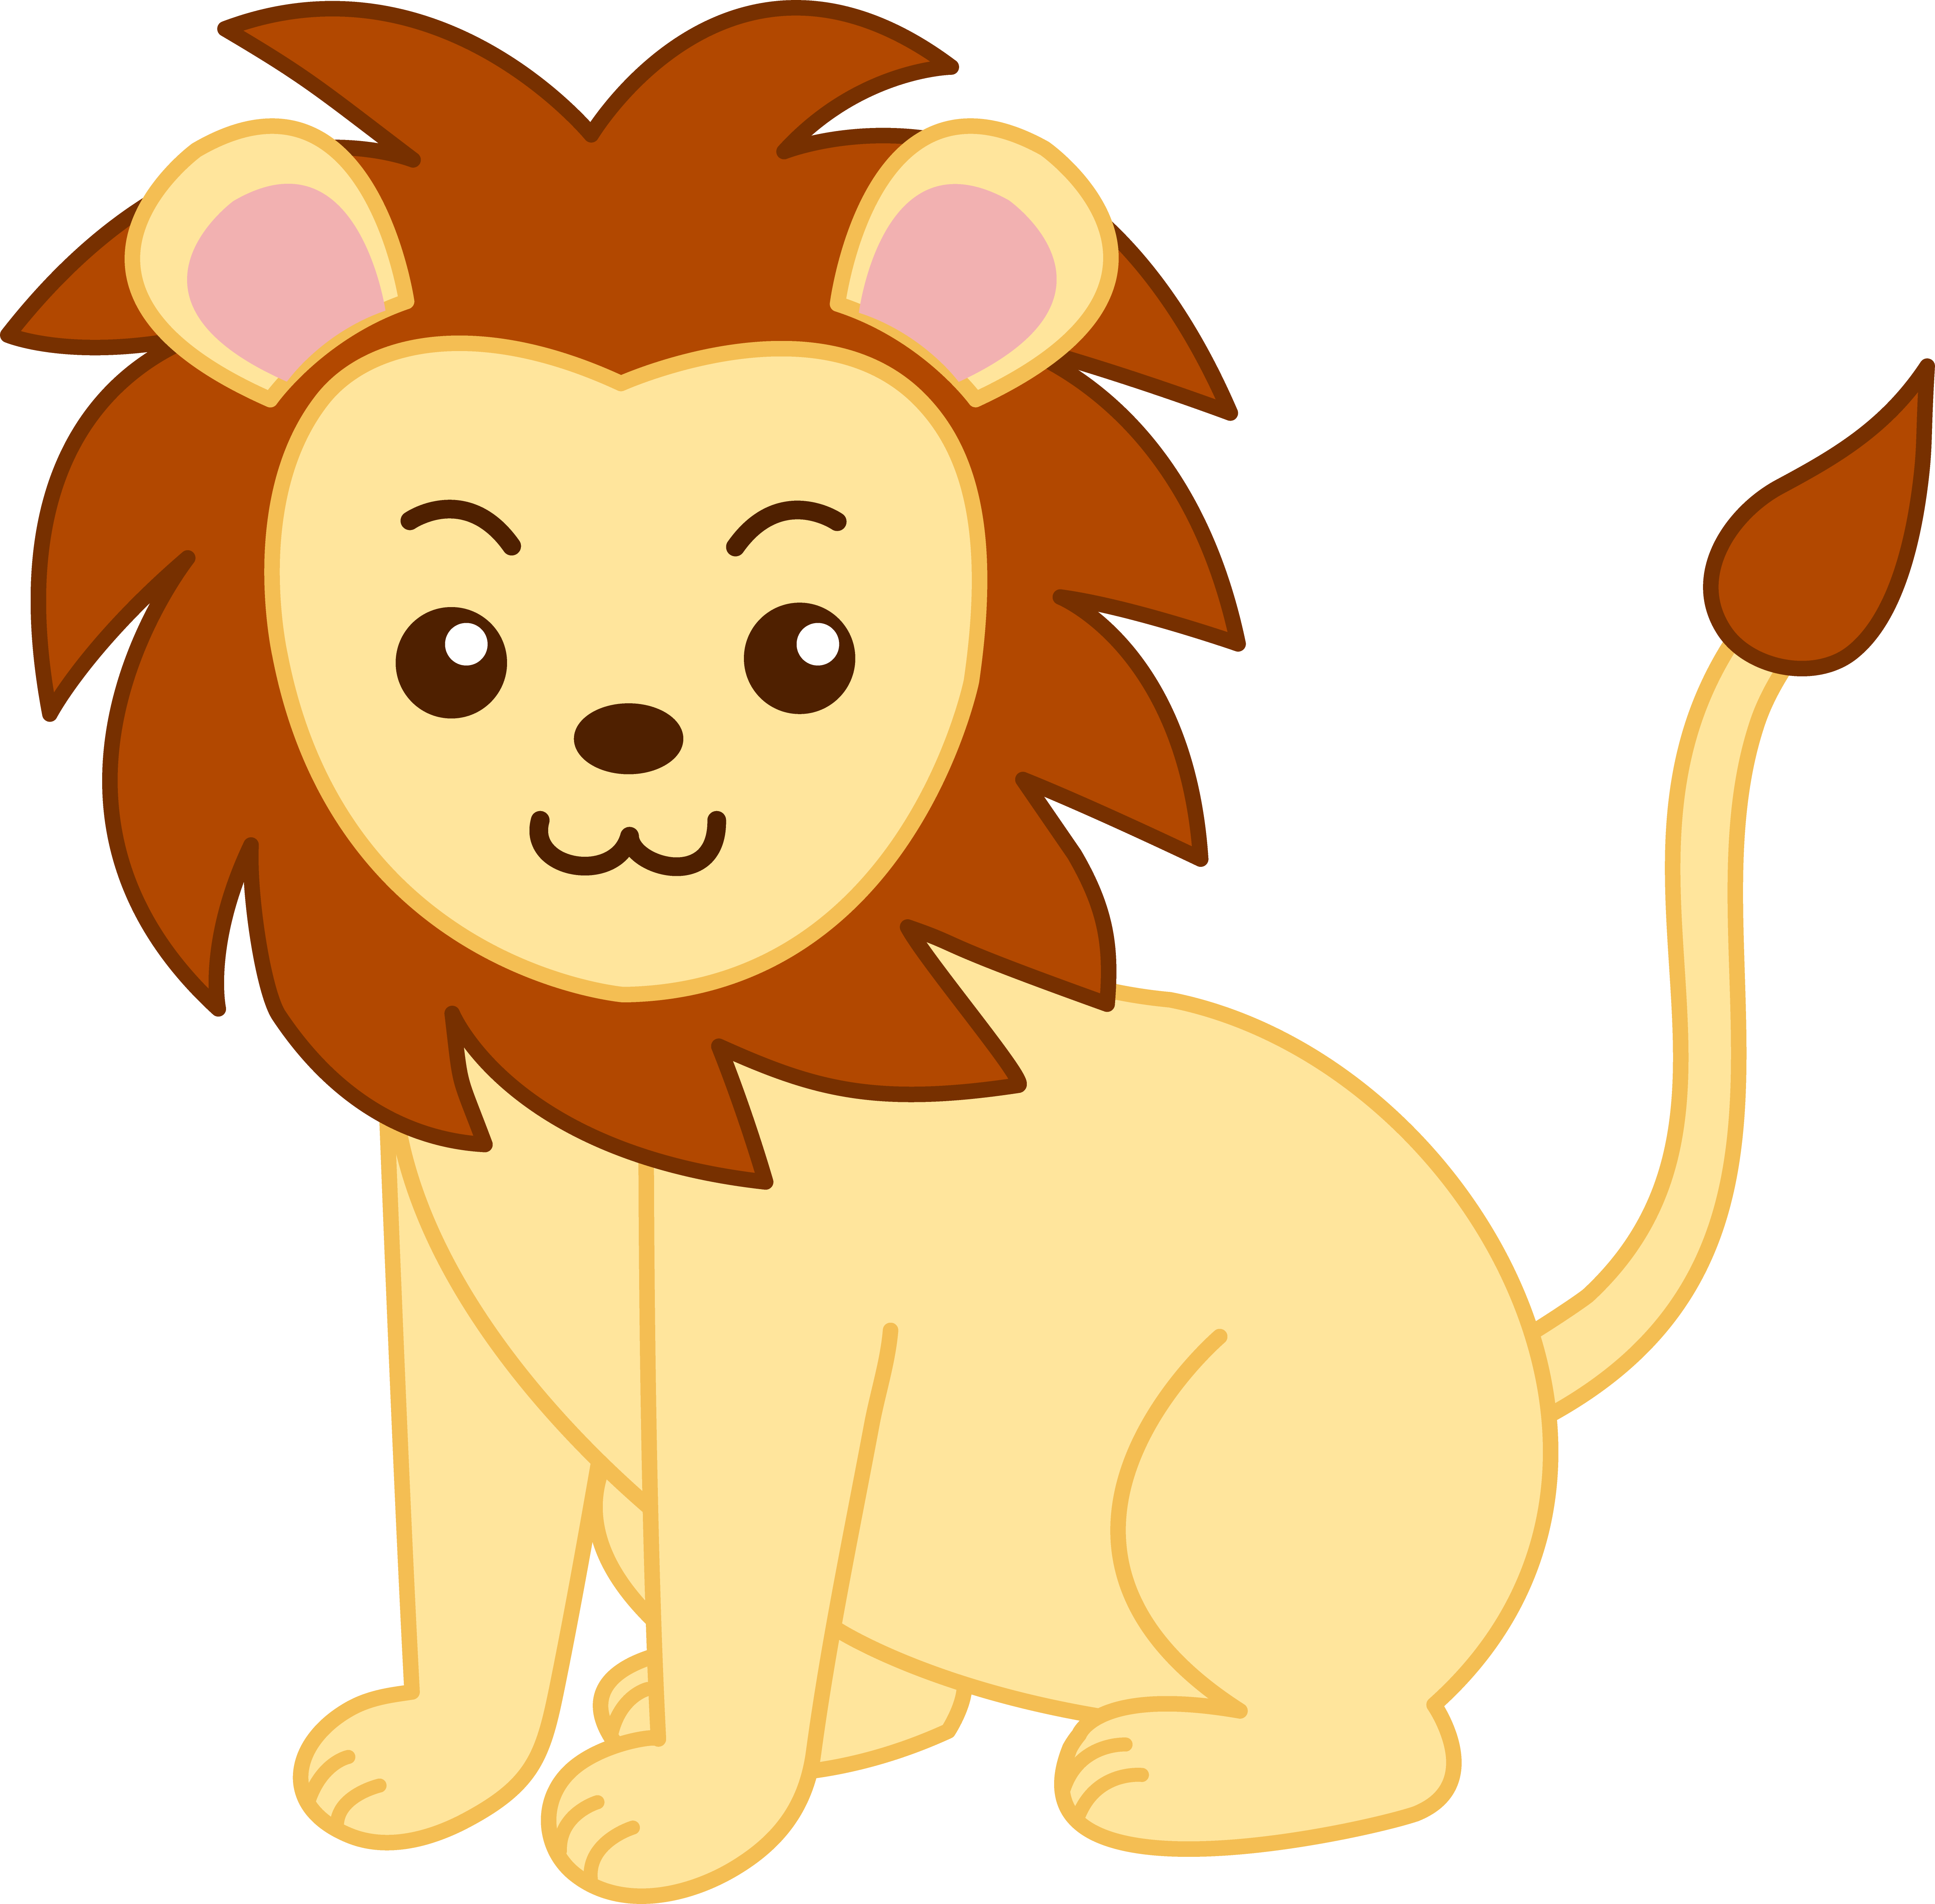 royalty free stock Cute cartoon animals little. March clipart lion lamb.